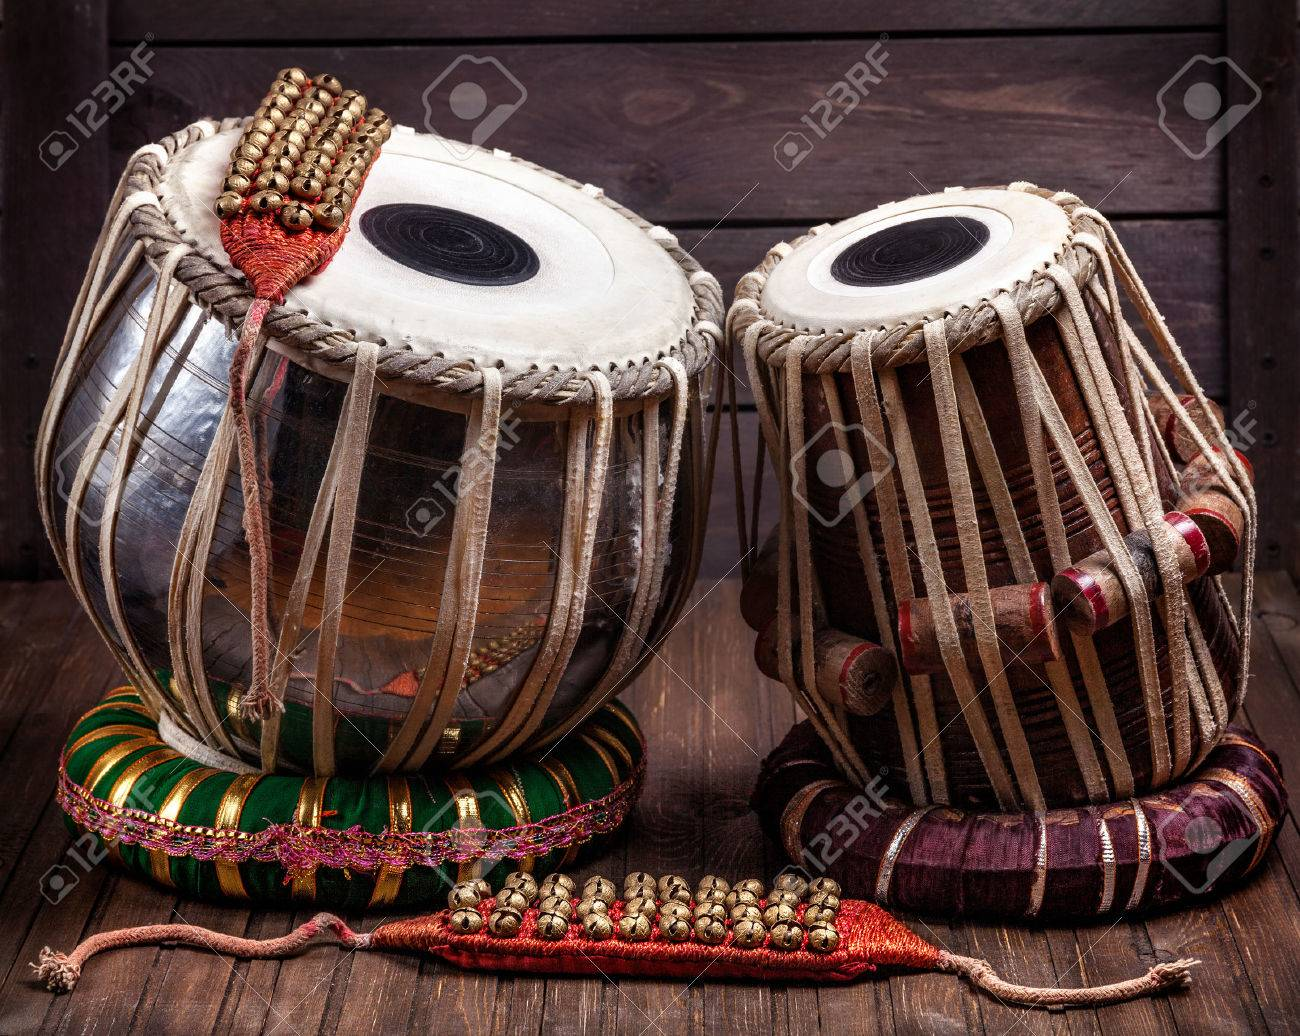 Tabla drums and bells for Indian dancing on wooden background Stock Photo - 42213774